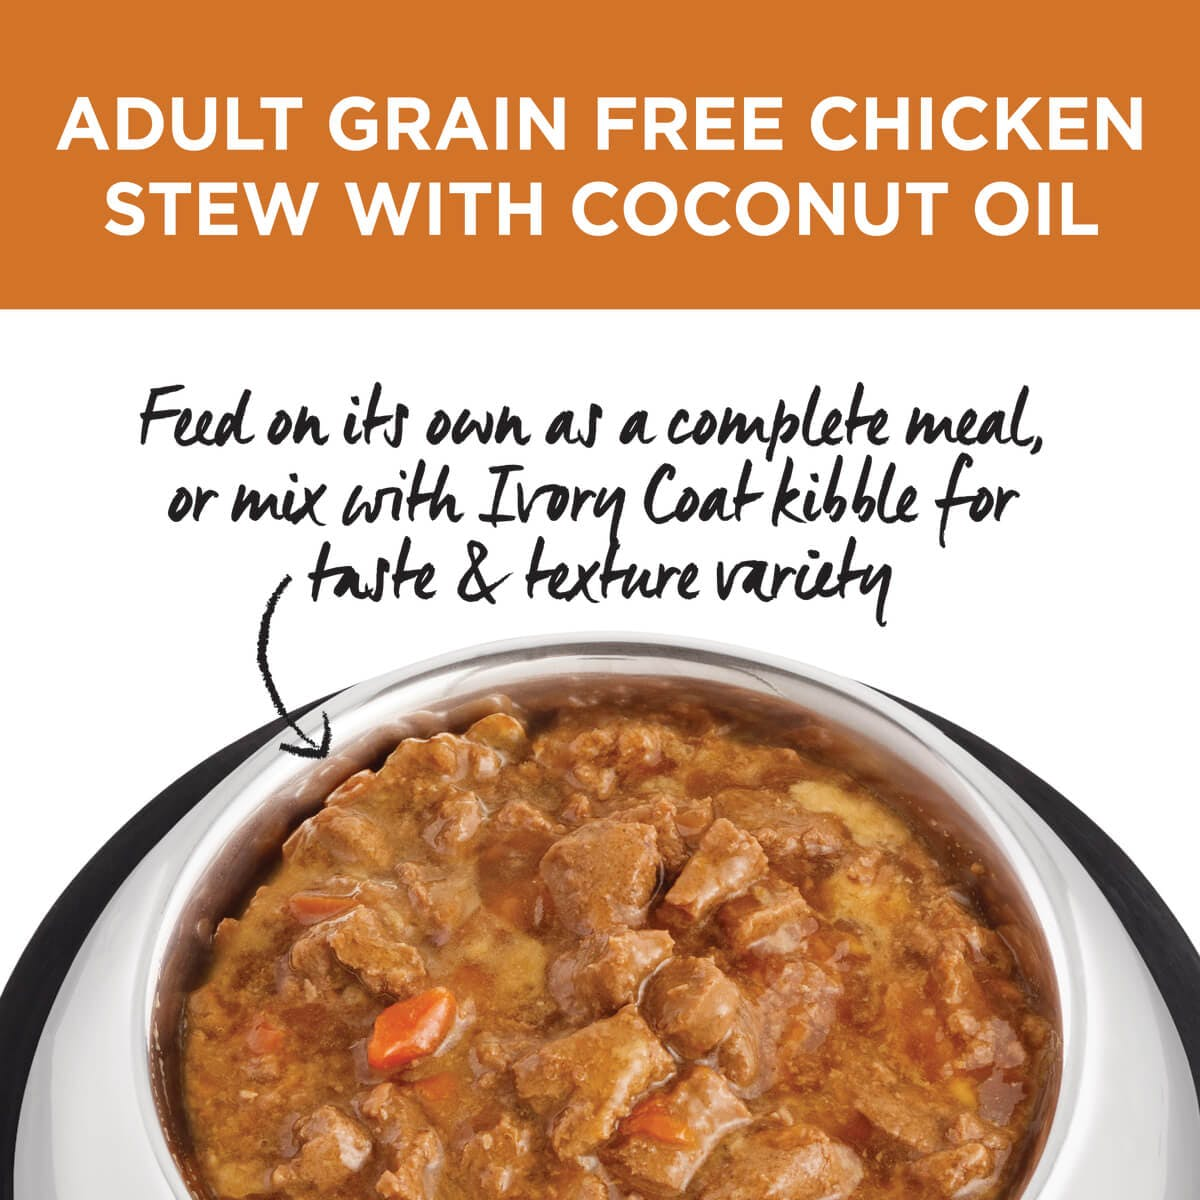 Ivory Coat | Wet Chicken Stew with Coconut Oil 400g | Grain Free Wet Dog Food | Top of pack